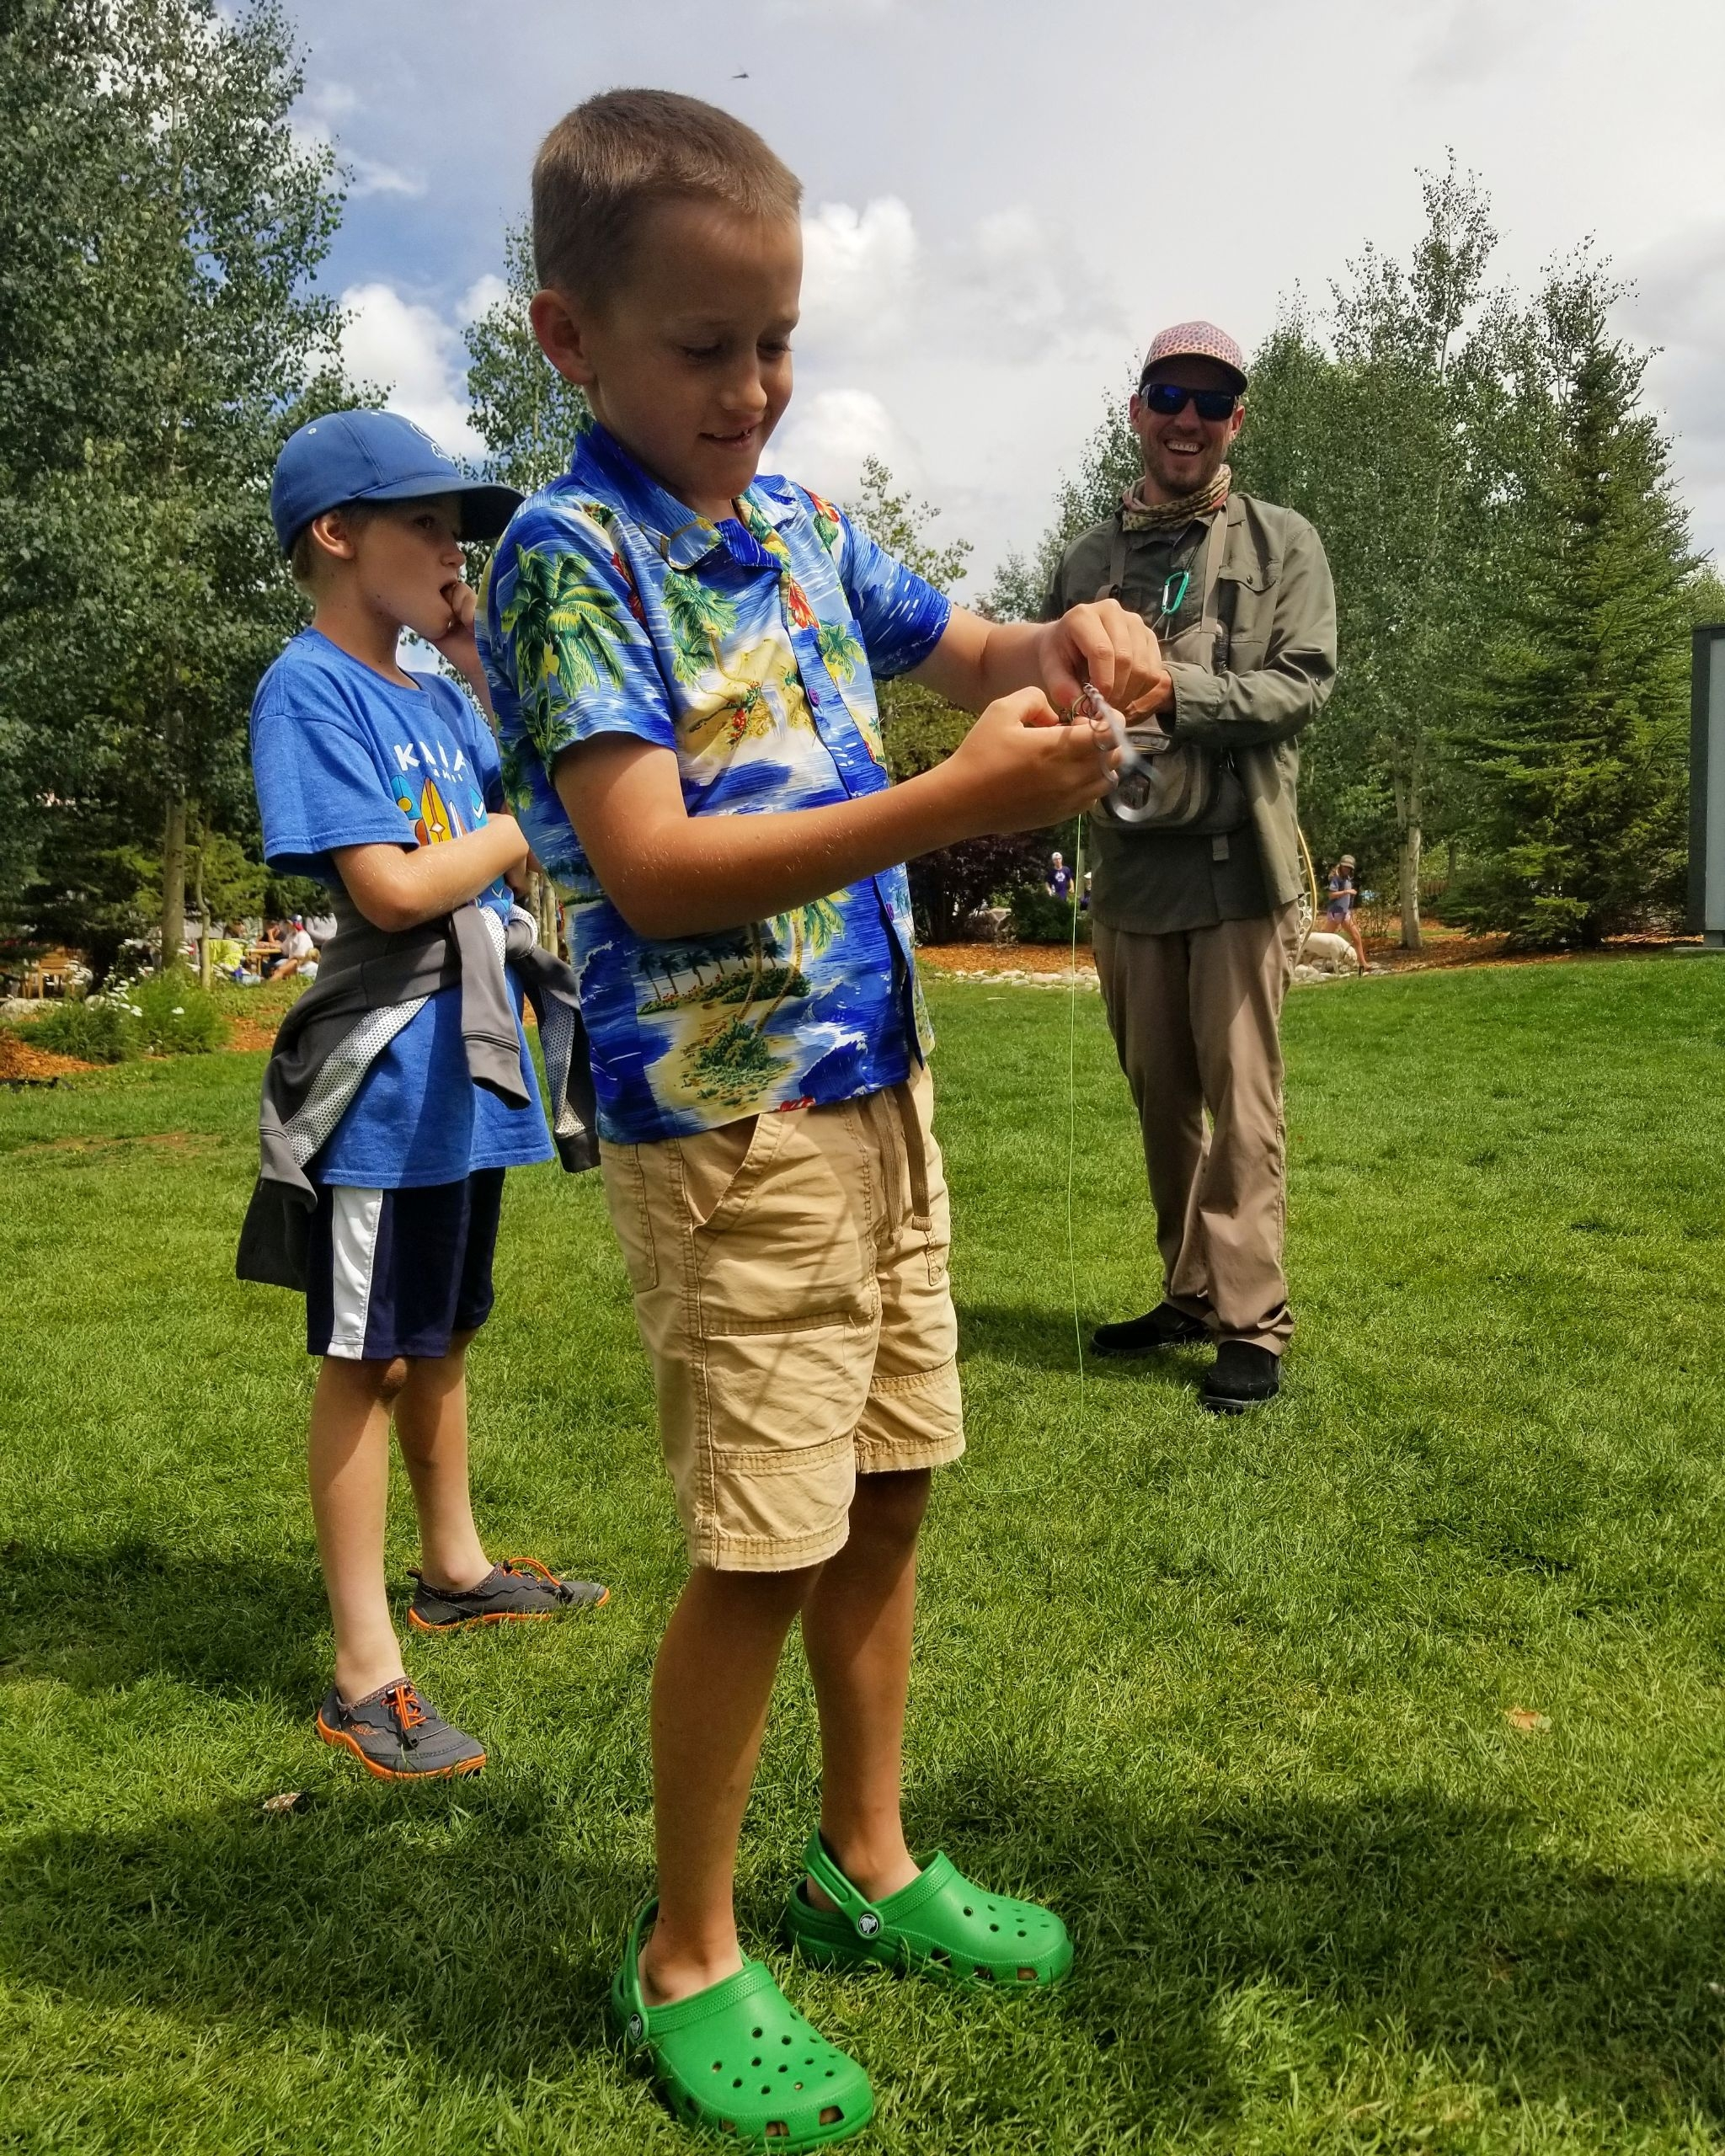 Giving Back to the Community - Fly Fishing is all about being educated and taking the time to learn something new and exciting. The most important thing to remember is to enjoy your time on the water and decompress from a long day.By working with local community organizations SFF is able to provide services that educate the youth of today how to fly fish while having a good time on and off the water.Arctic Char are a prized catch on Lake Dillon, only found in here in the lower 48 states. Come take a day off and take a shot at one today. Could be the next record catch of a lifetime!